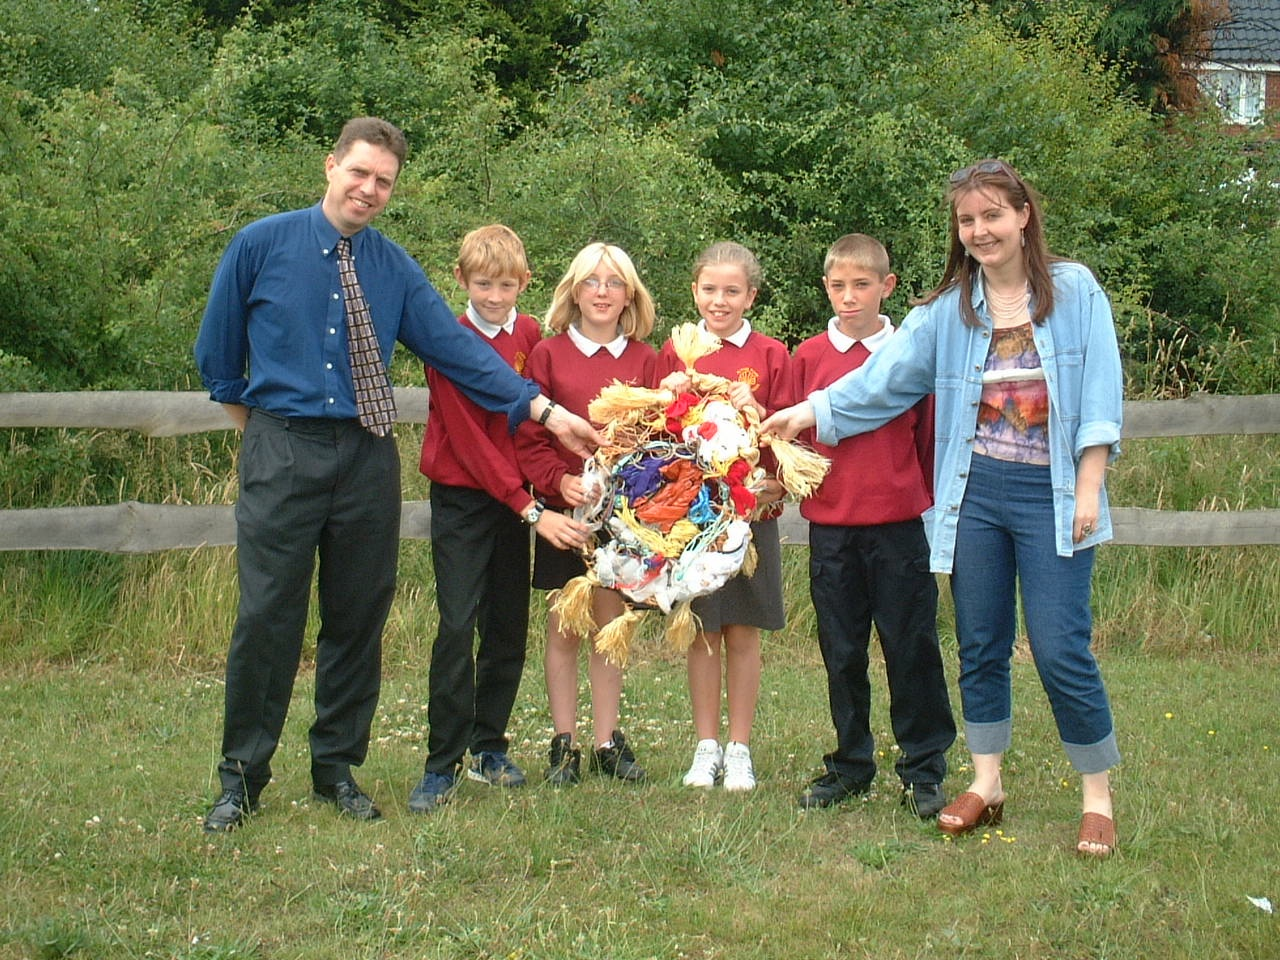 'doorposts', alton park junior school pupils say goodbye to their class piece